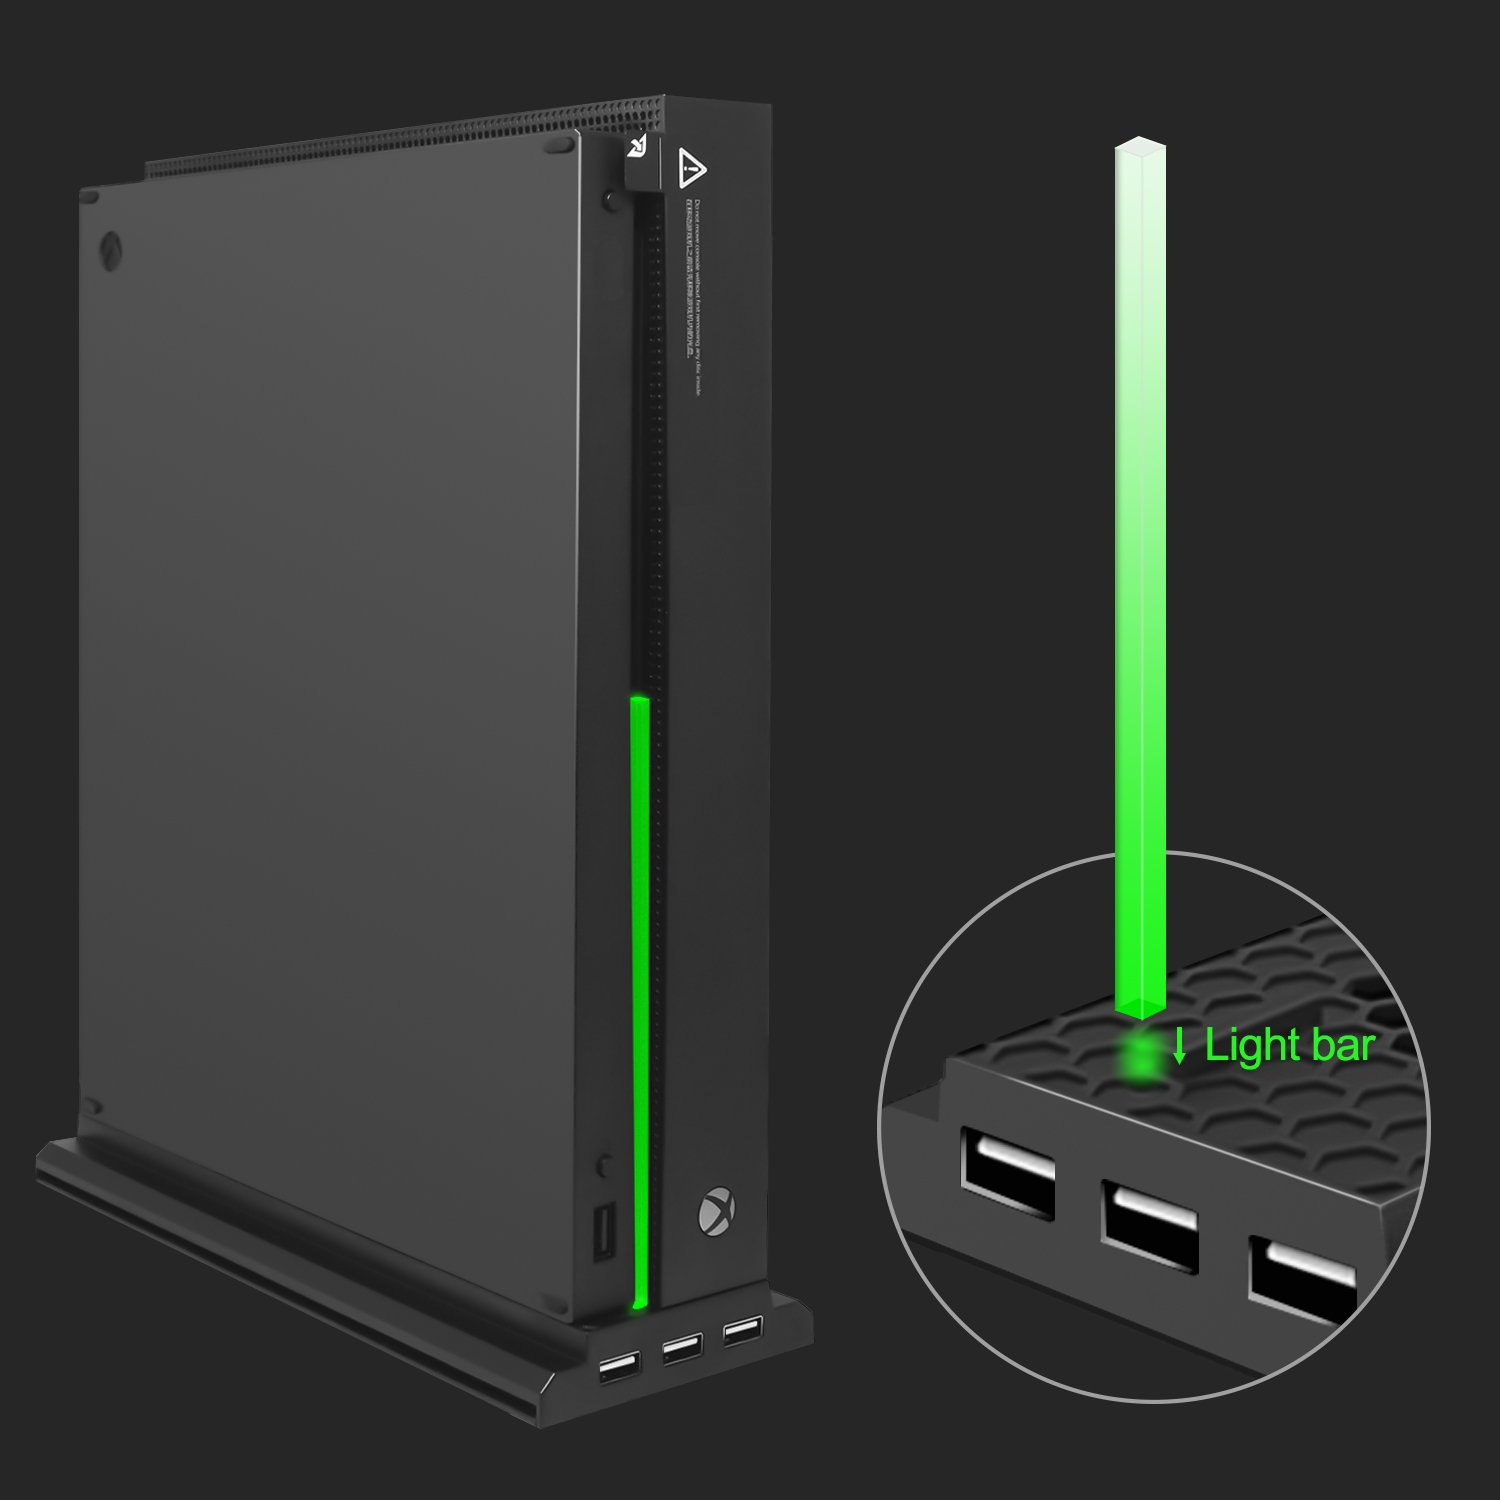 Only Compatible with Xbox one X Vertical Cooling Stand Compatible with Xbox One X FastSnail Cooling Fan Stand Compatible with Xbox One X with 3 USB Ports and a Light Bar